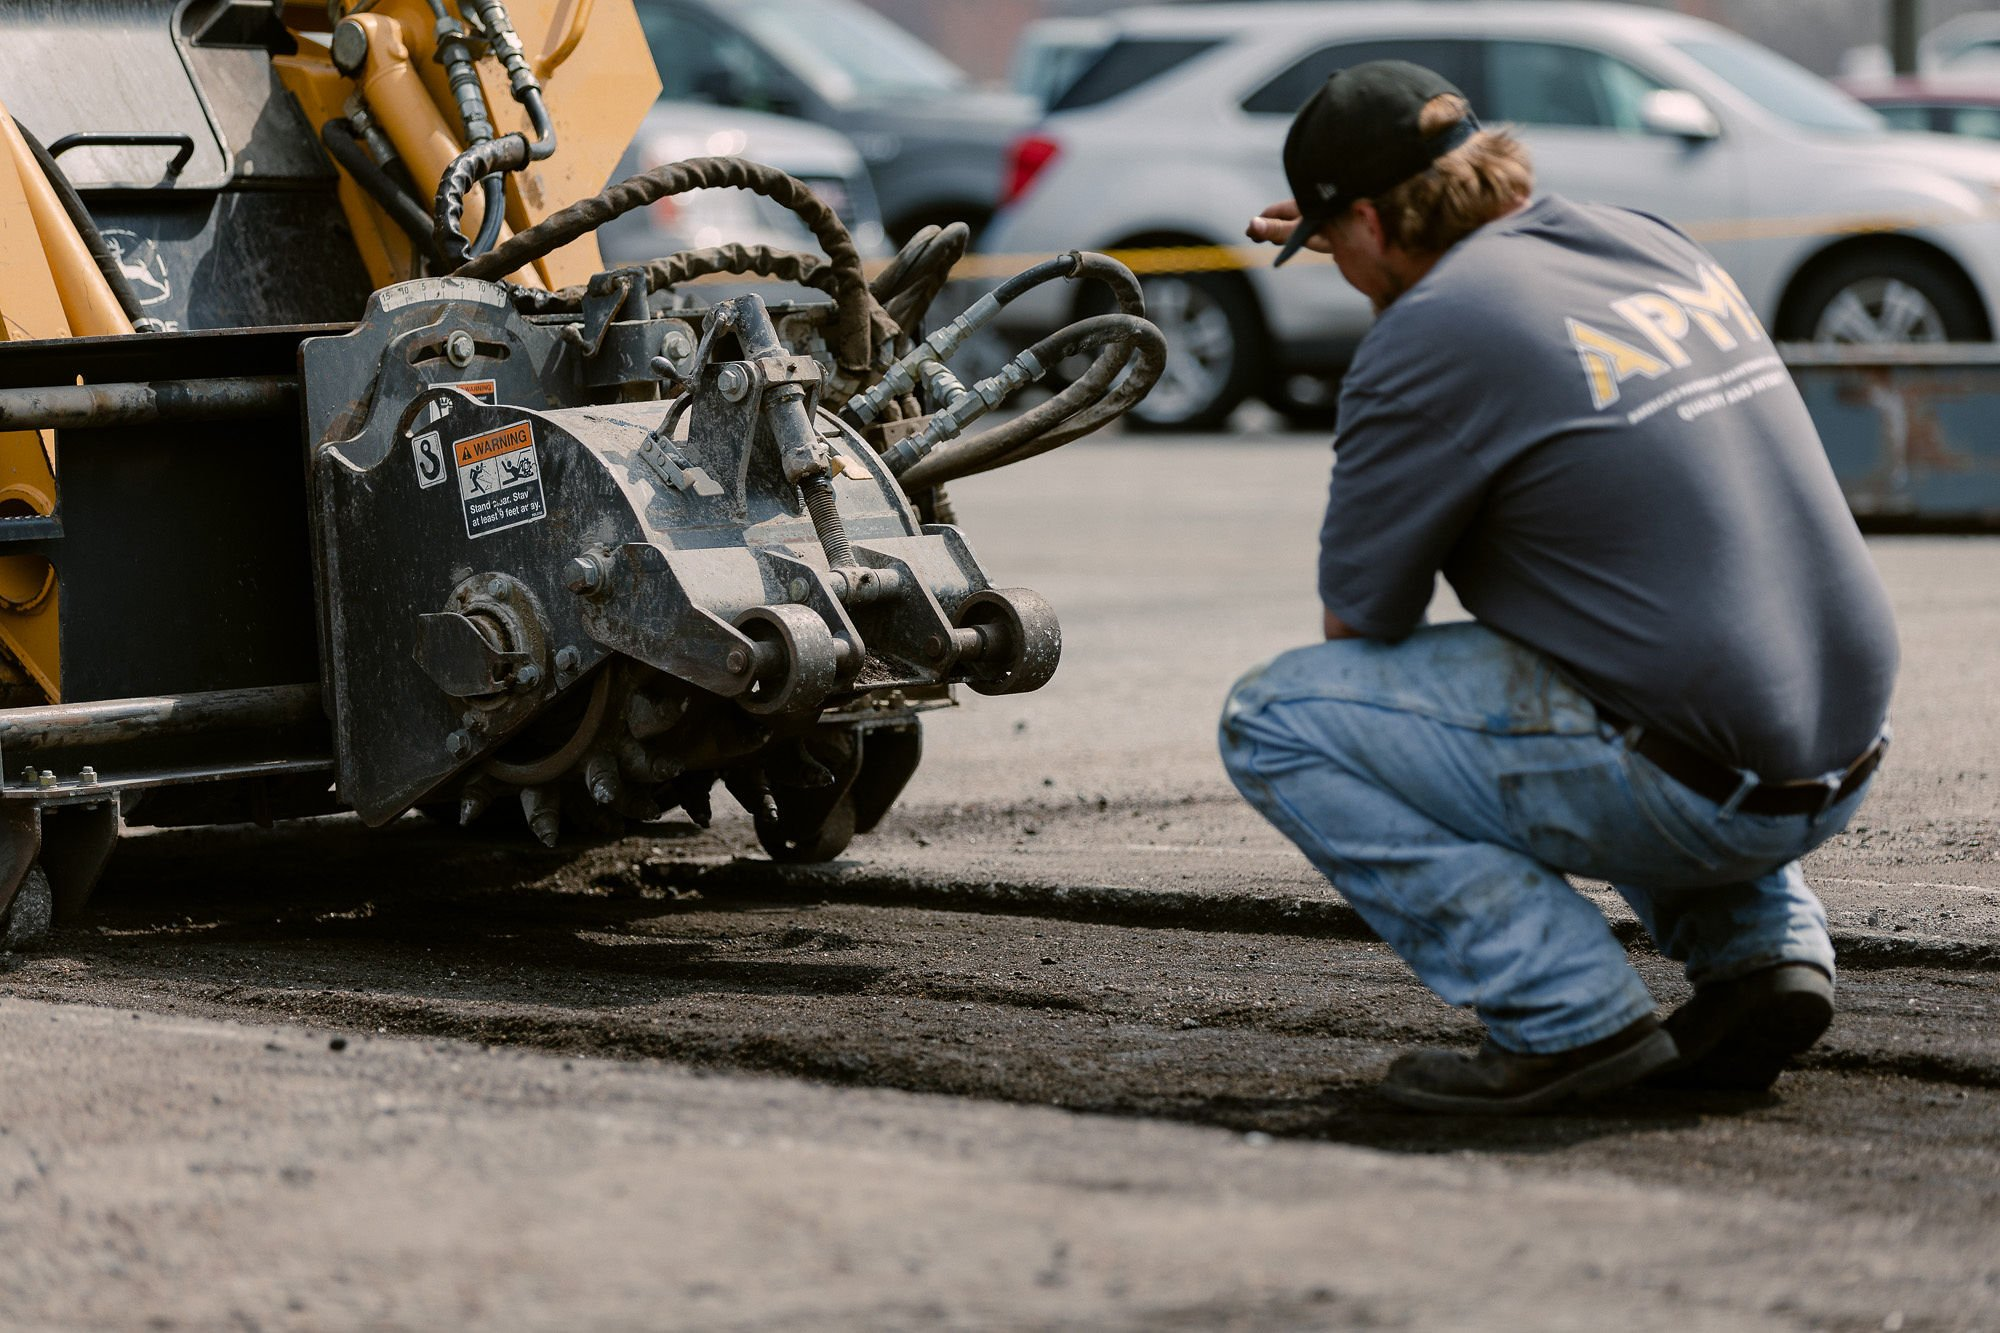 Lincoln Paving and Asphalt Repair apms 0604 - America's Pavement Maintenance Specialist | Lincoln, Nebraska